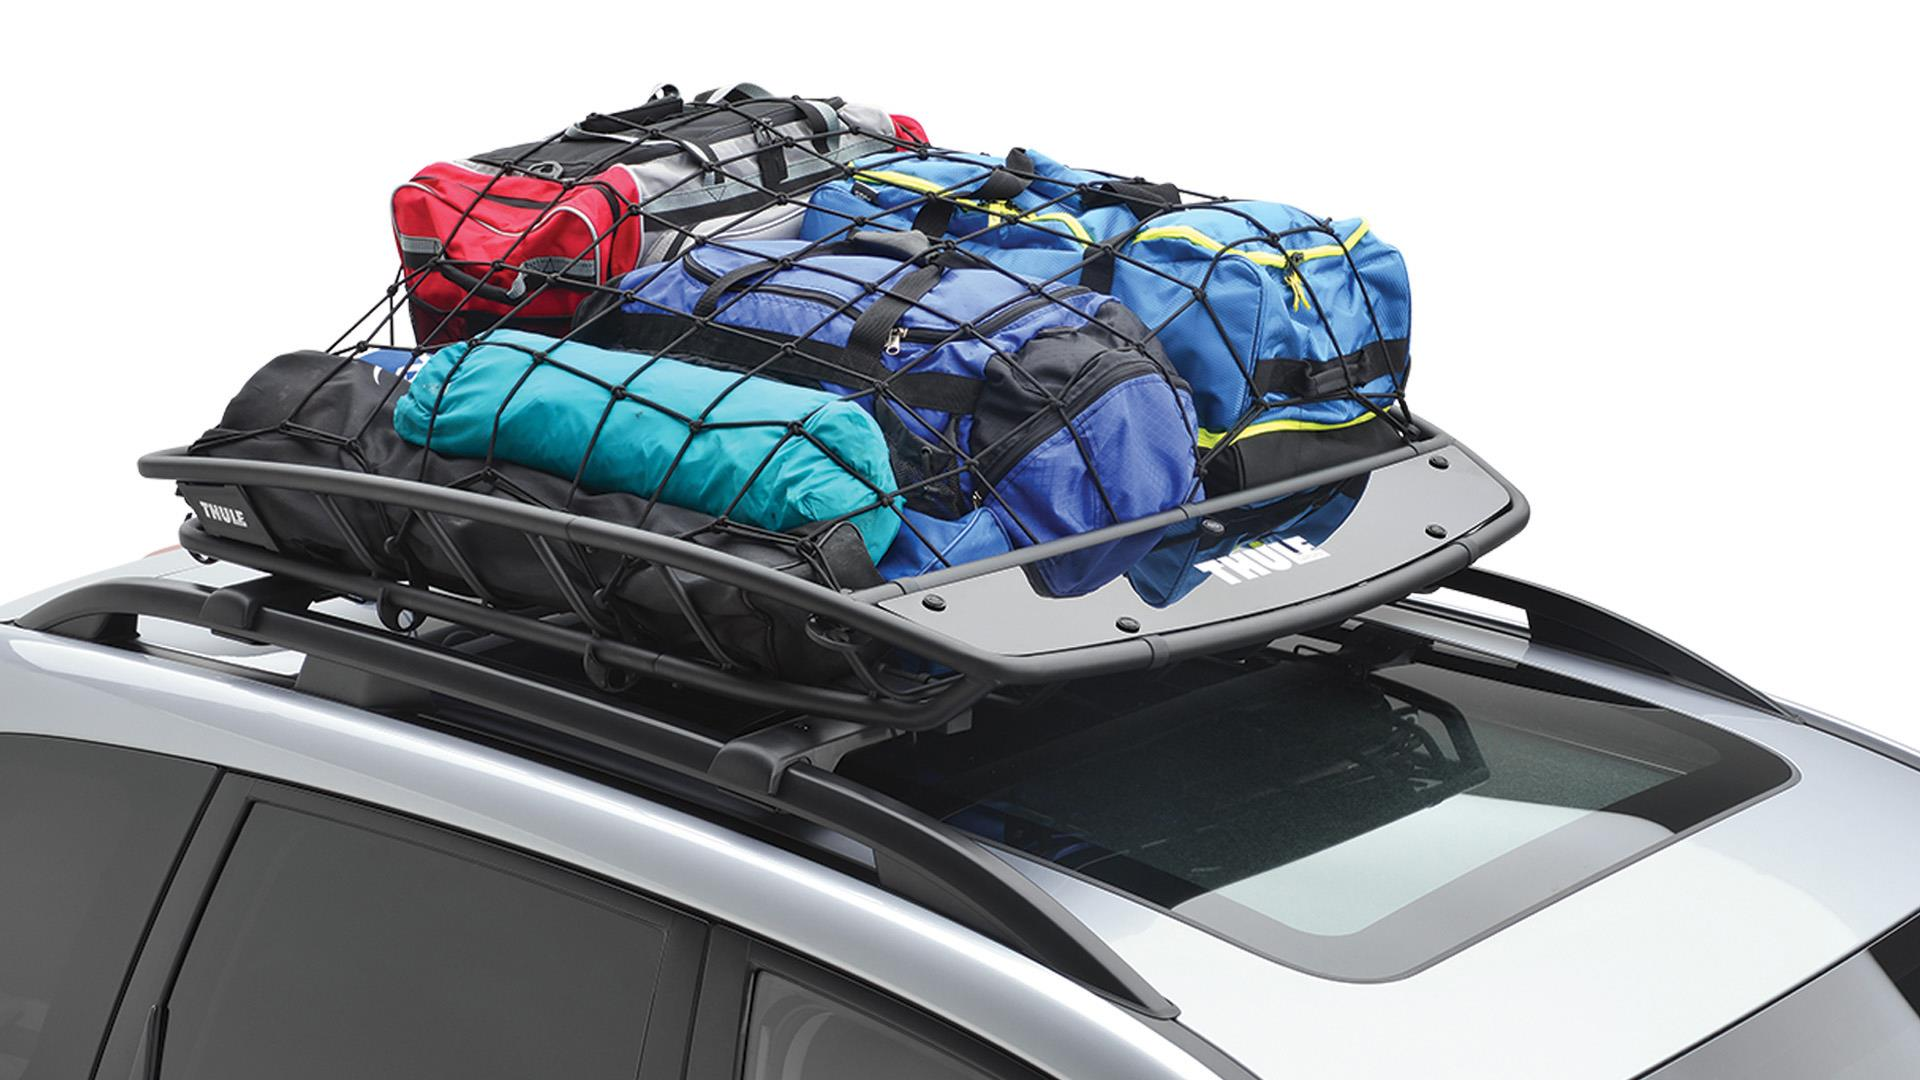 Subaru Crosstrek Roof Rack >> Shop Genuine 2017 Subaru WRX Accessories | Subaru of America